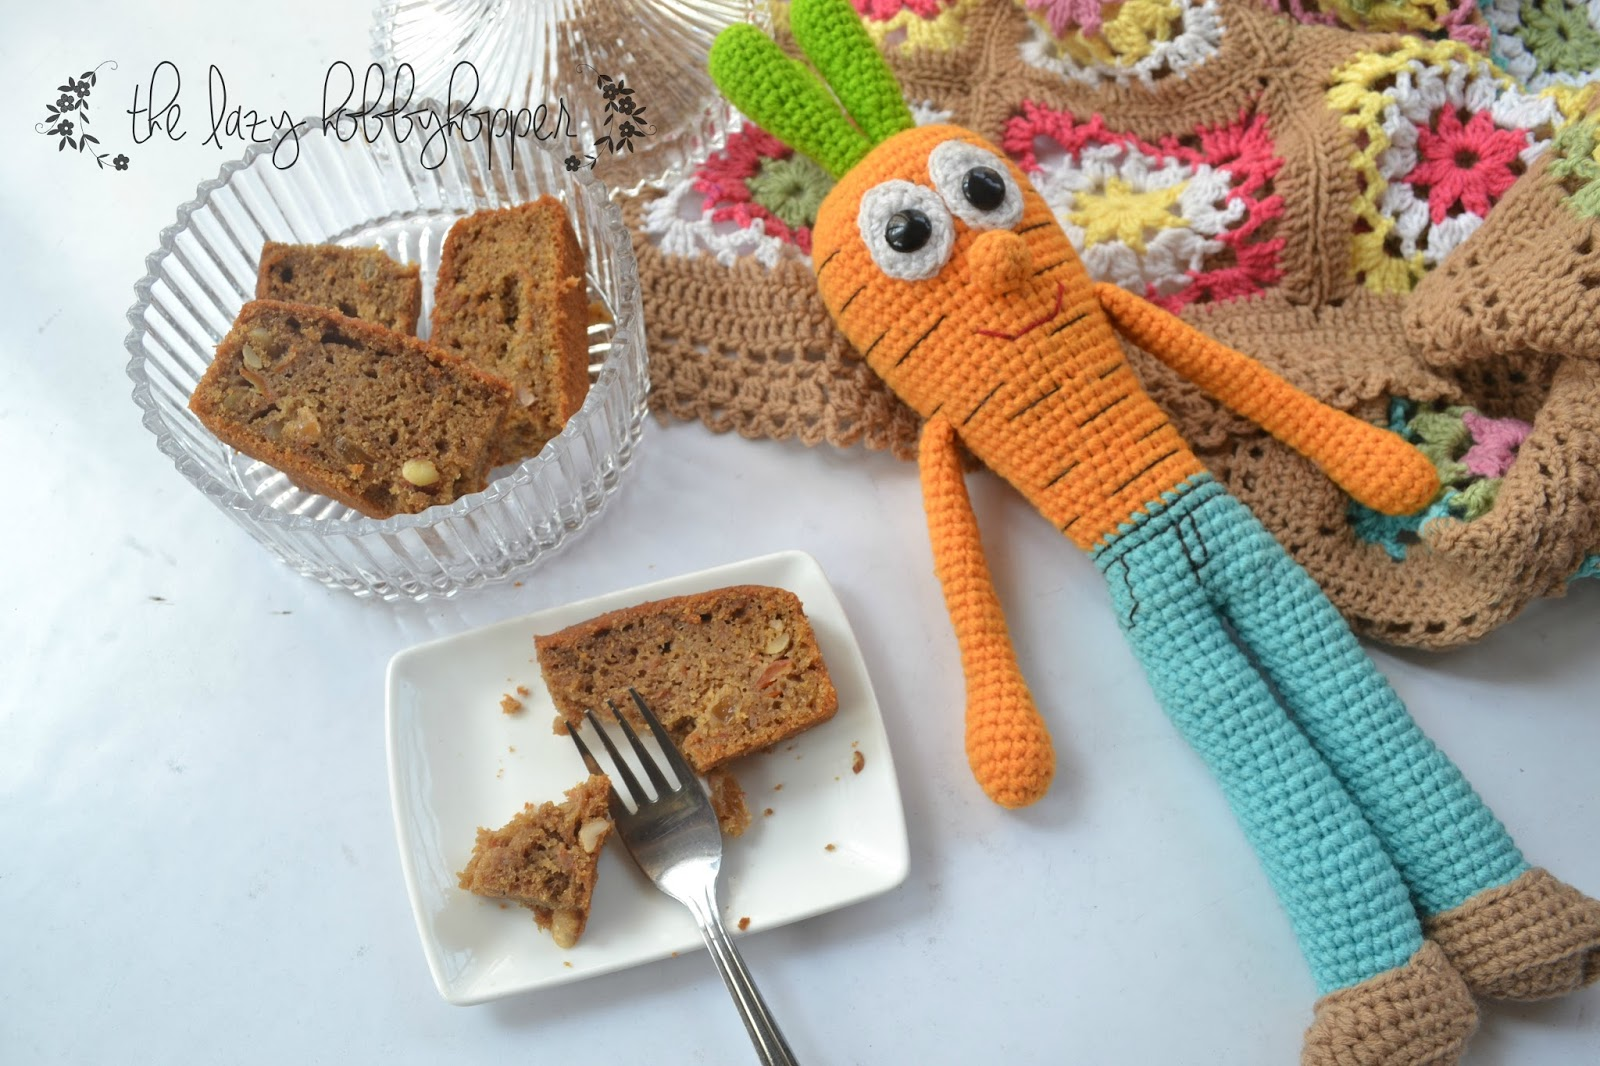 Carrot Cake Recipe Uk No Nuts: The Lazy Hobbyhopper: Whole Wheat Carrot Cake With Coffee